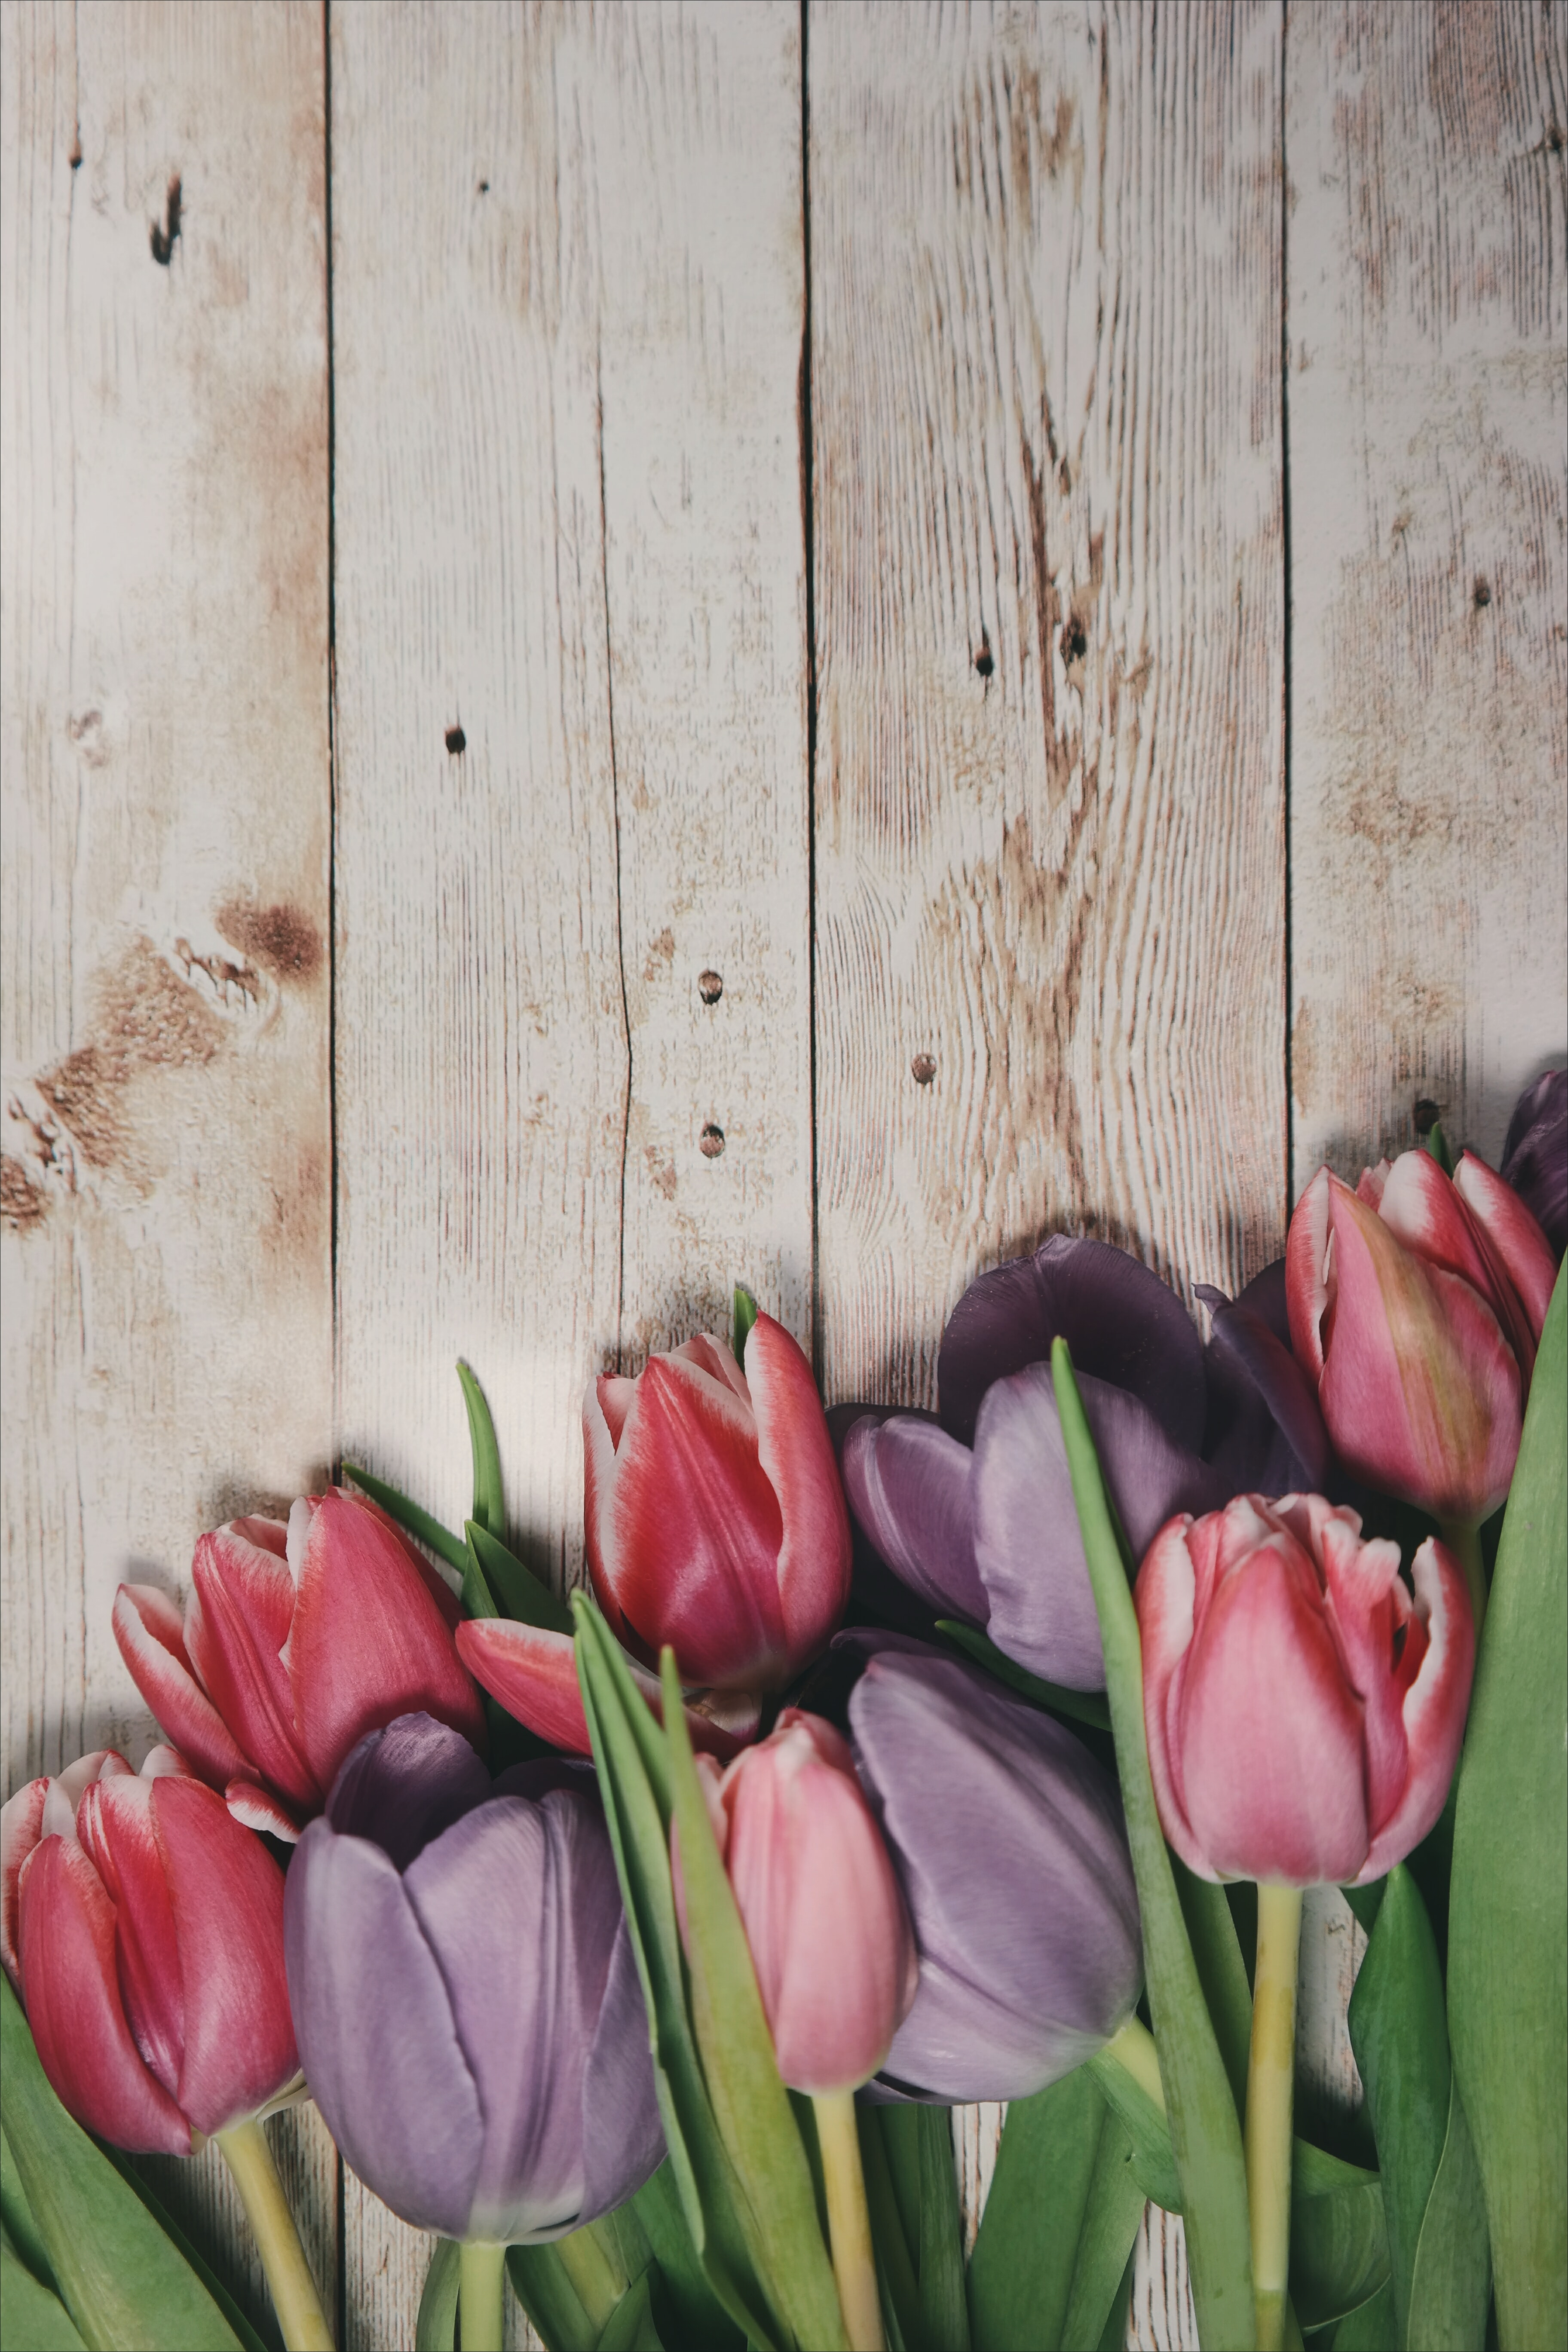 Macro shot of pink tulips on a wooden deck.